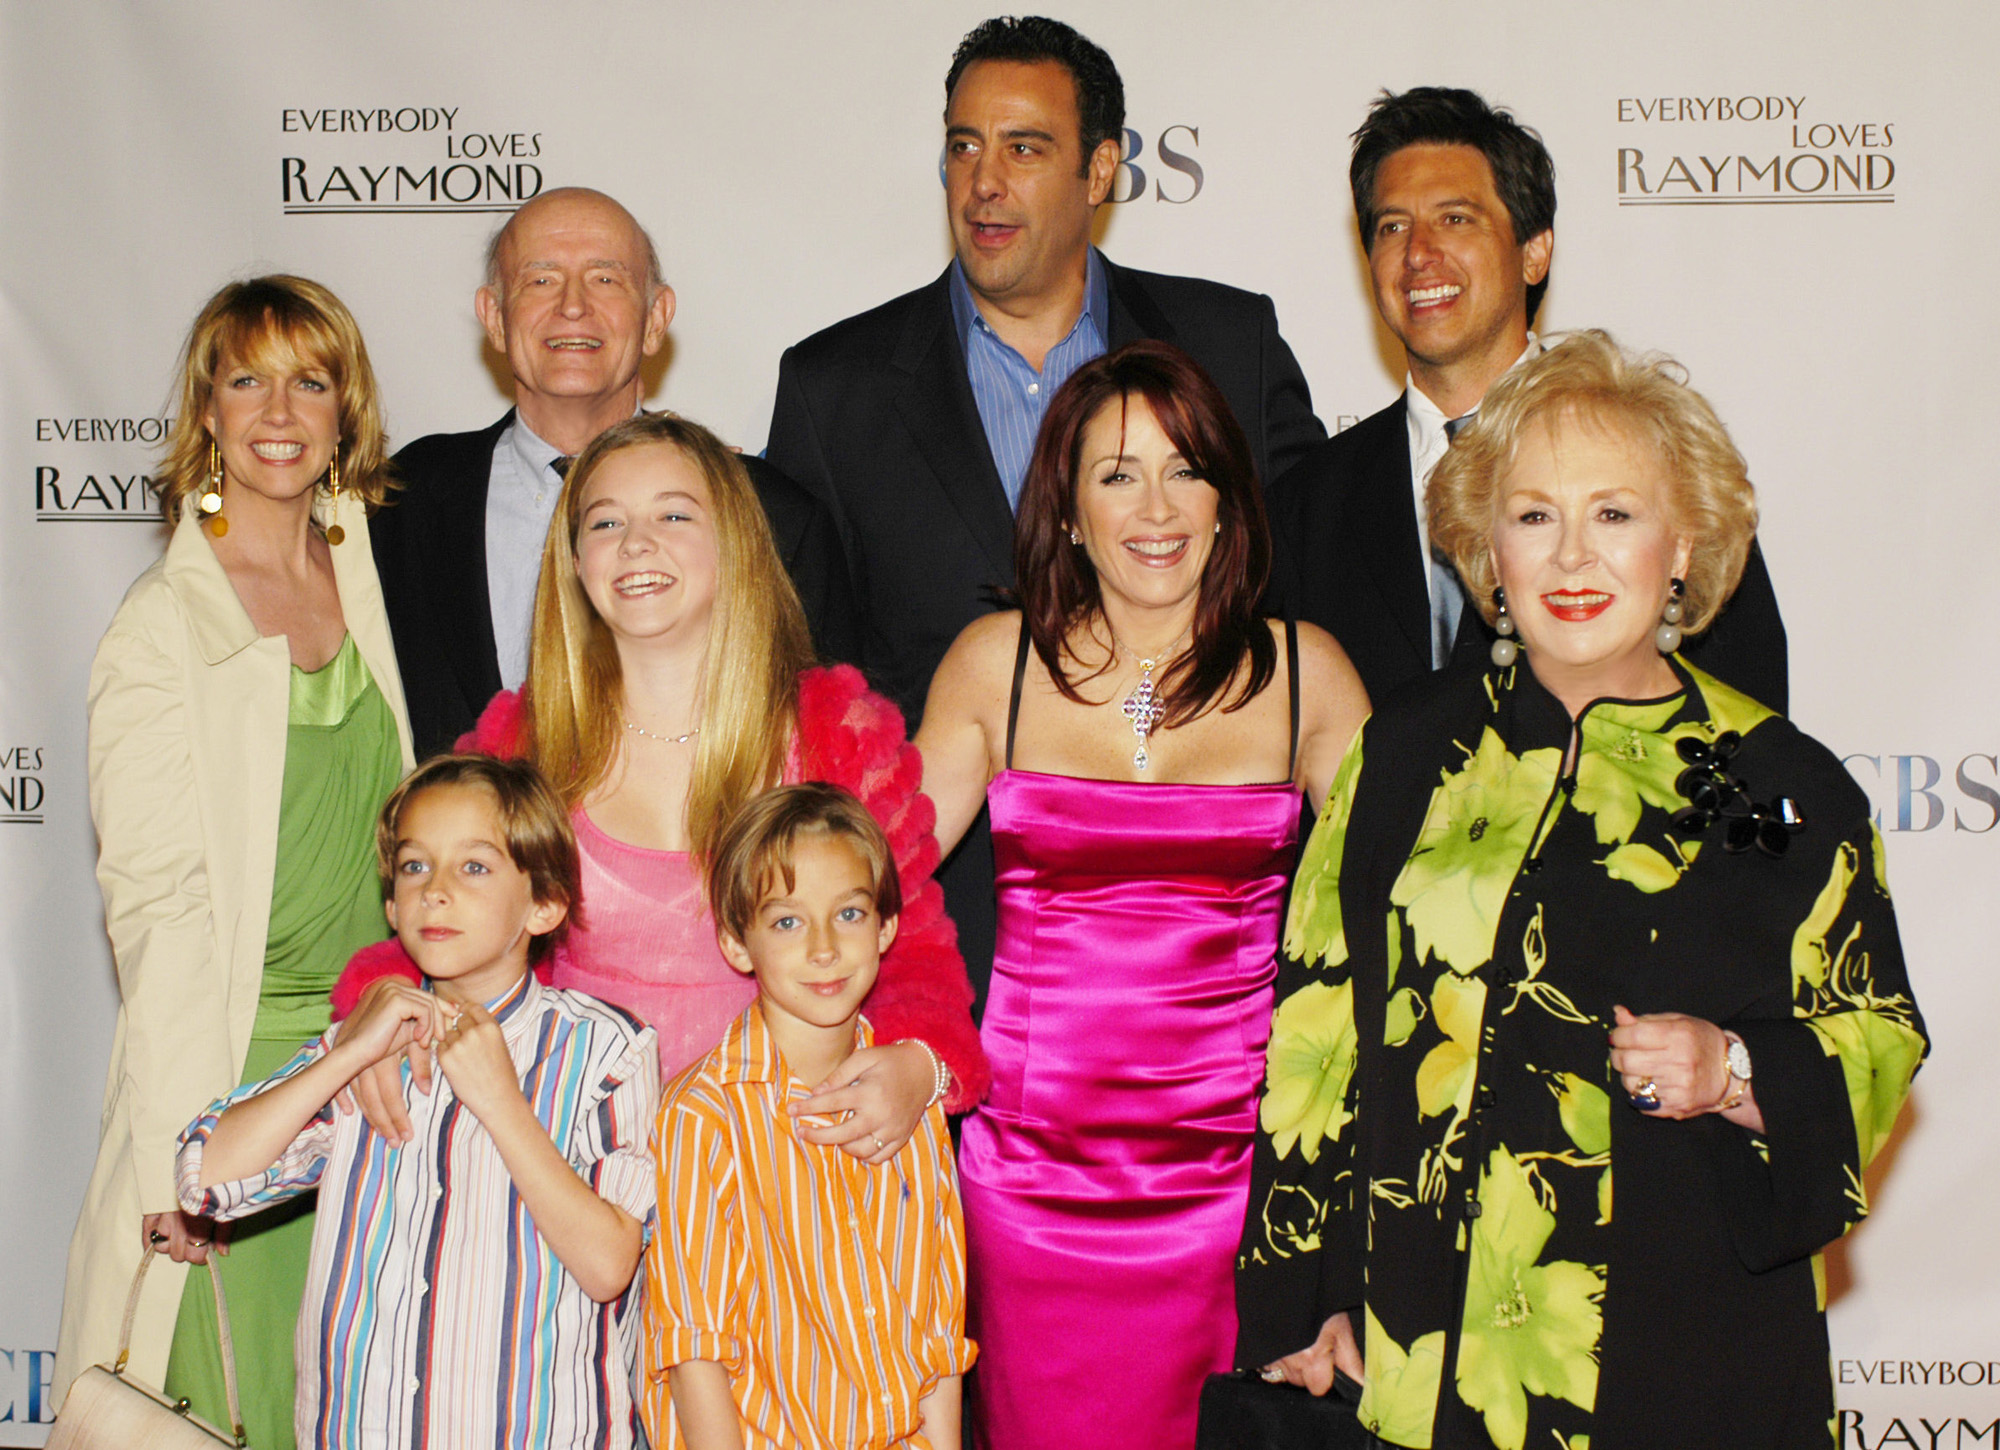 The cast of 'Everybody Loves Raymond' at the cast series wrap party in 2005.